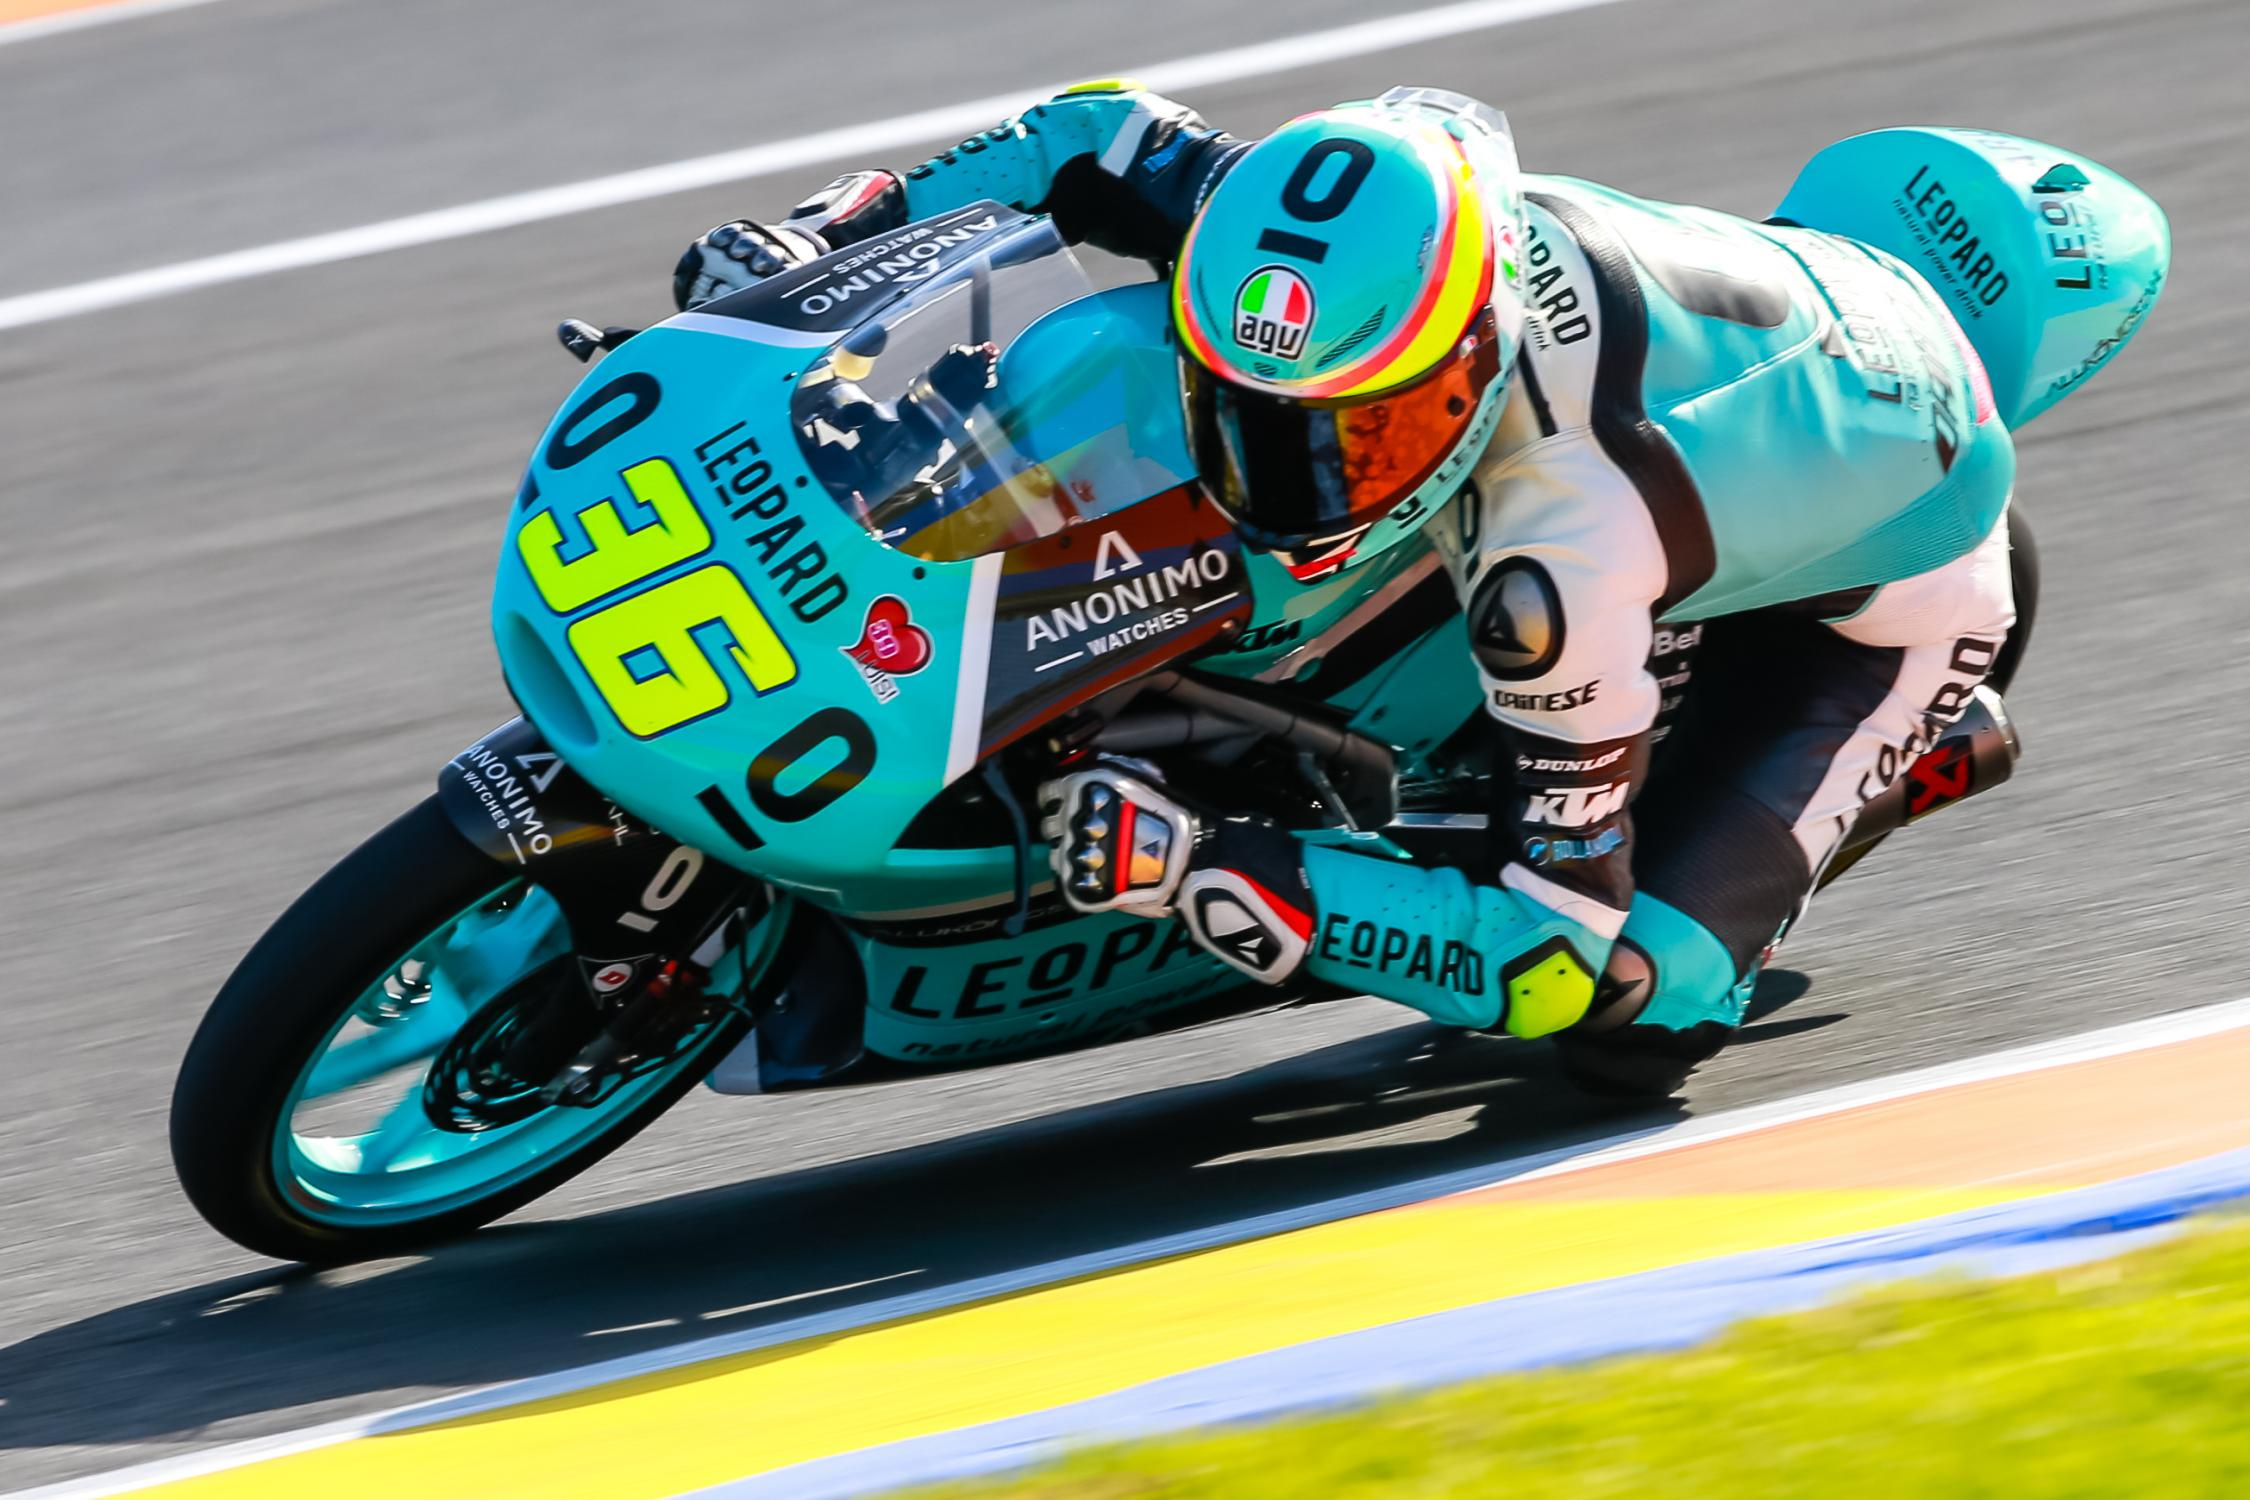 Moto3 Joan Mir Makes It Two In A Row Bikesrepublic Win Tutup Leopard Racing Continued His Perfect Season With Second Straight